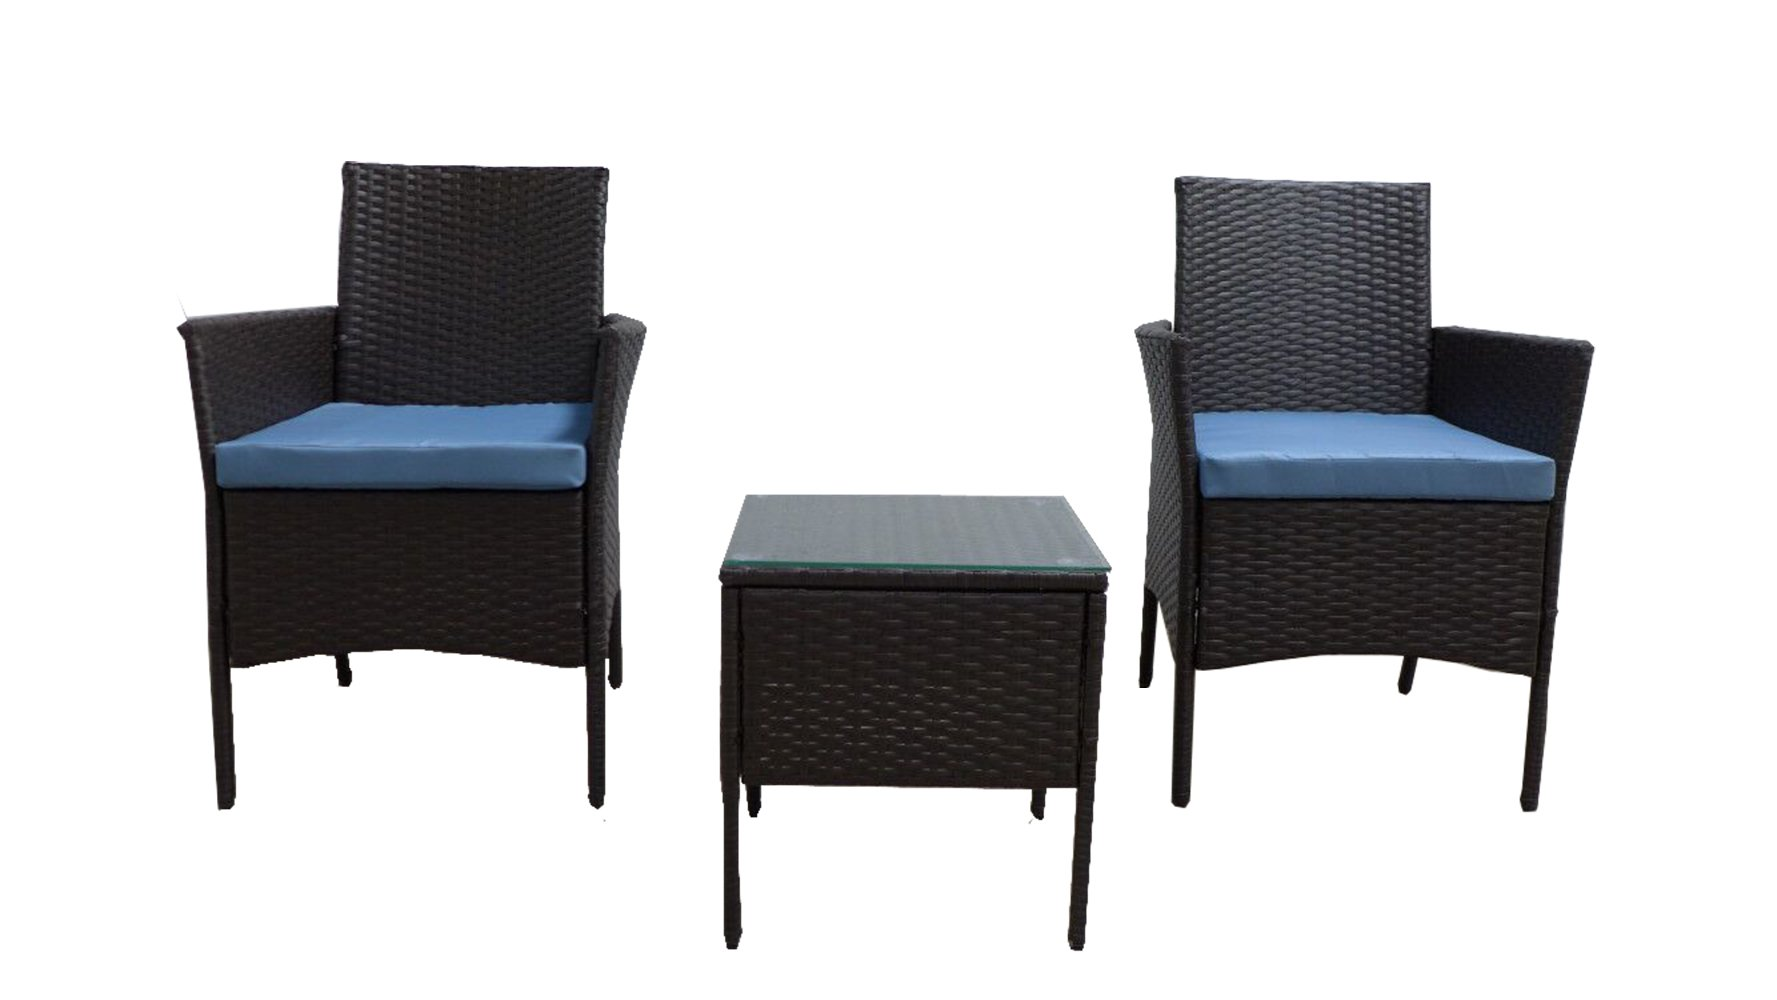 "GOJOOASIS Rattan Patio Outdoor Armchairs PE Wicker Furniture 3 Piece Conversation Set Garden Table and Chairs with Blue Cushions, Brown - 【3PCS CONVERSATION SET】Comes with 2 Armchair, 1 table with tempered glass top, 2 seat cushions, providing relaxation for up to 2 persons. 【RATTAN SECTIONAL DIMENSION】Overall size Armchair: 23.25""L x 17.75""W x 32.25""H; Coffee Table: 15.75""L x 15.75""W x 17""H; Max Load-bearing: 350 lbs for Sofa; 120 lbs for Coffee Table 【DURABLE OUTDOOR FURNITURE】This sectional is constructed from a rust-resistant steel frame and PE Rattan Wicker. Rattan is naturally more durable and long-lasting than traditional wicker making this piece more heat and weather resistant than similar wicker furniture. - patio-furniture, patio, conversation-sets - 61FXt vuYkL -"